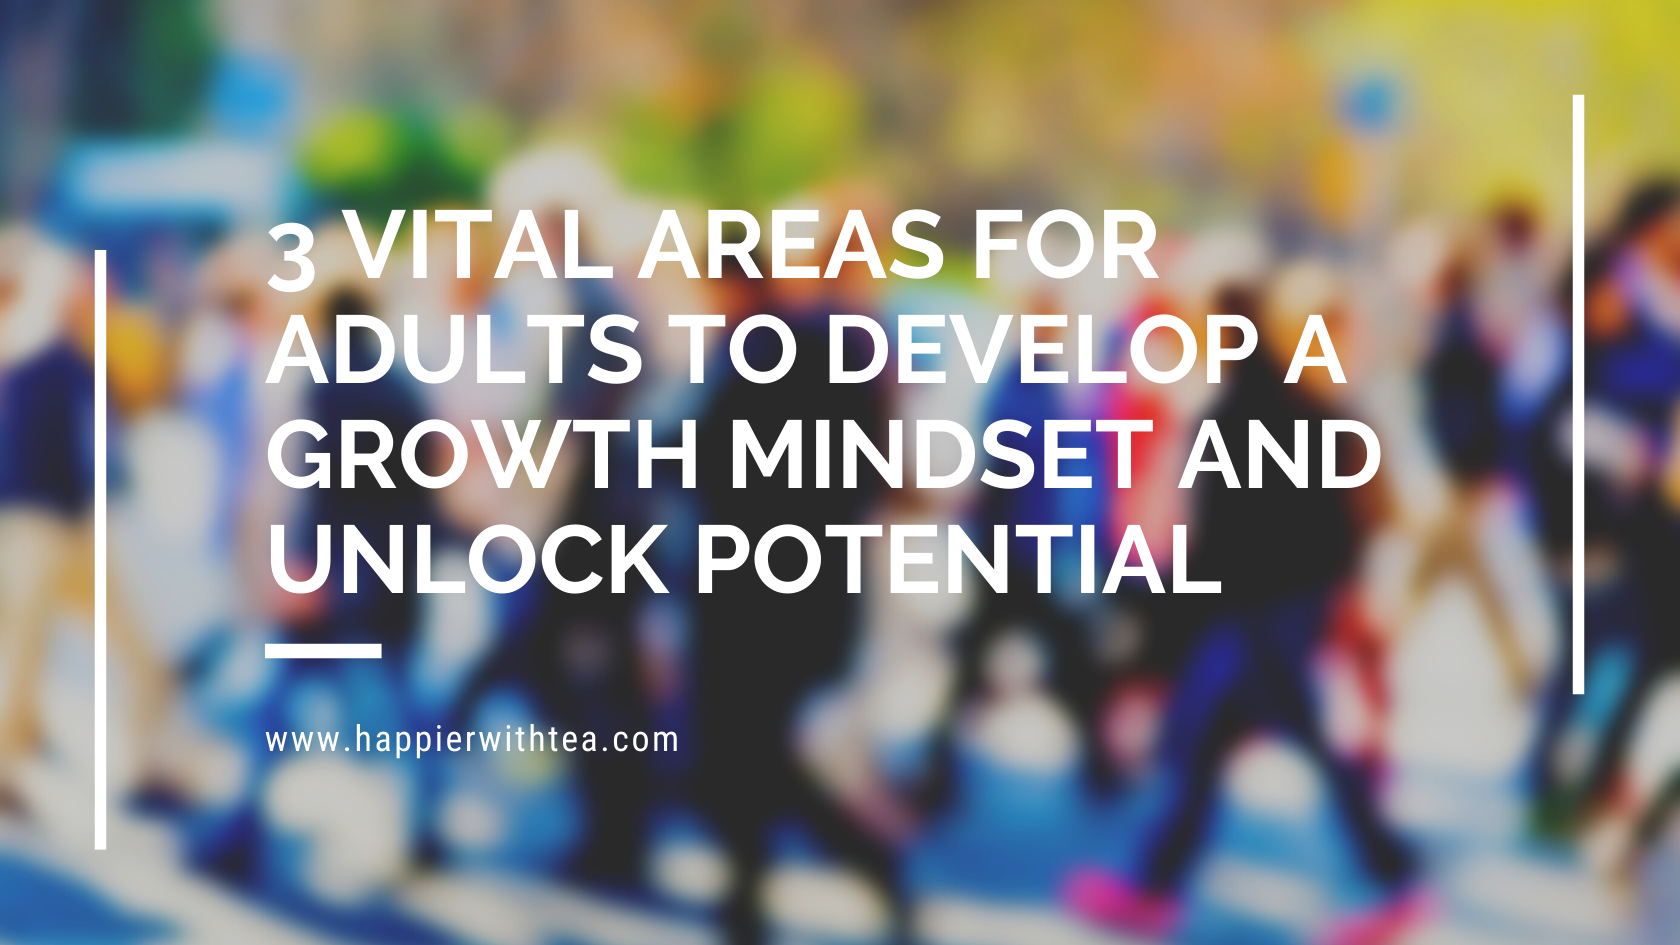 3 Vital Areas For Adults to Develop a Growth Mindset and Unlock Potential